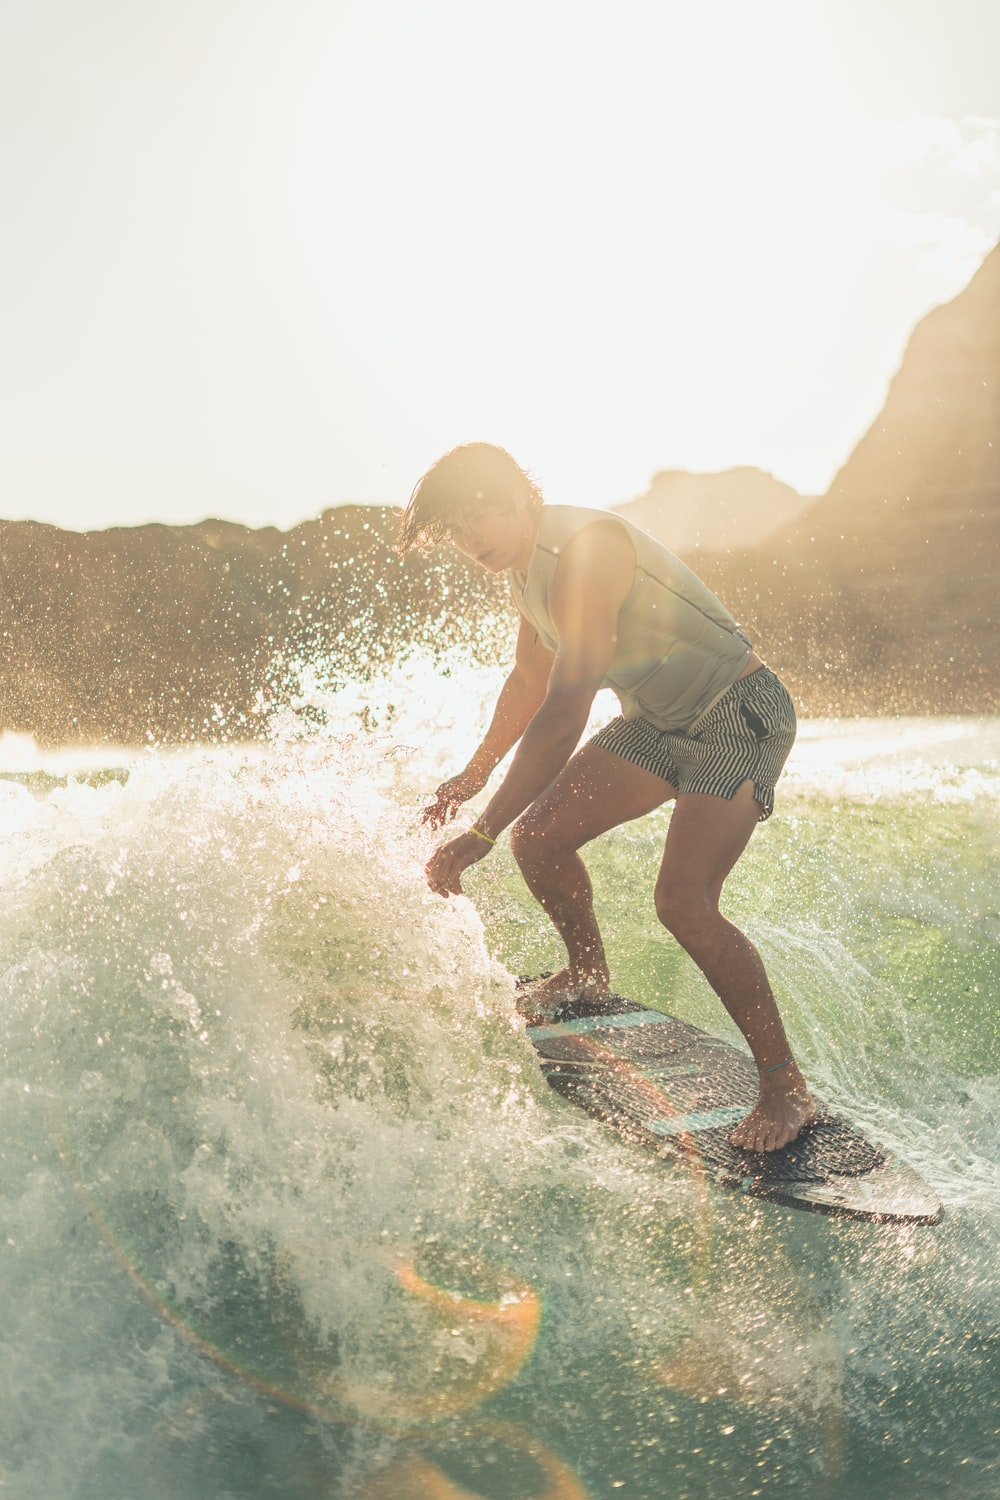 man in gray tank top and white shorts surfing on sea waves during daytime